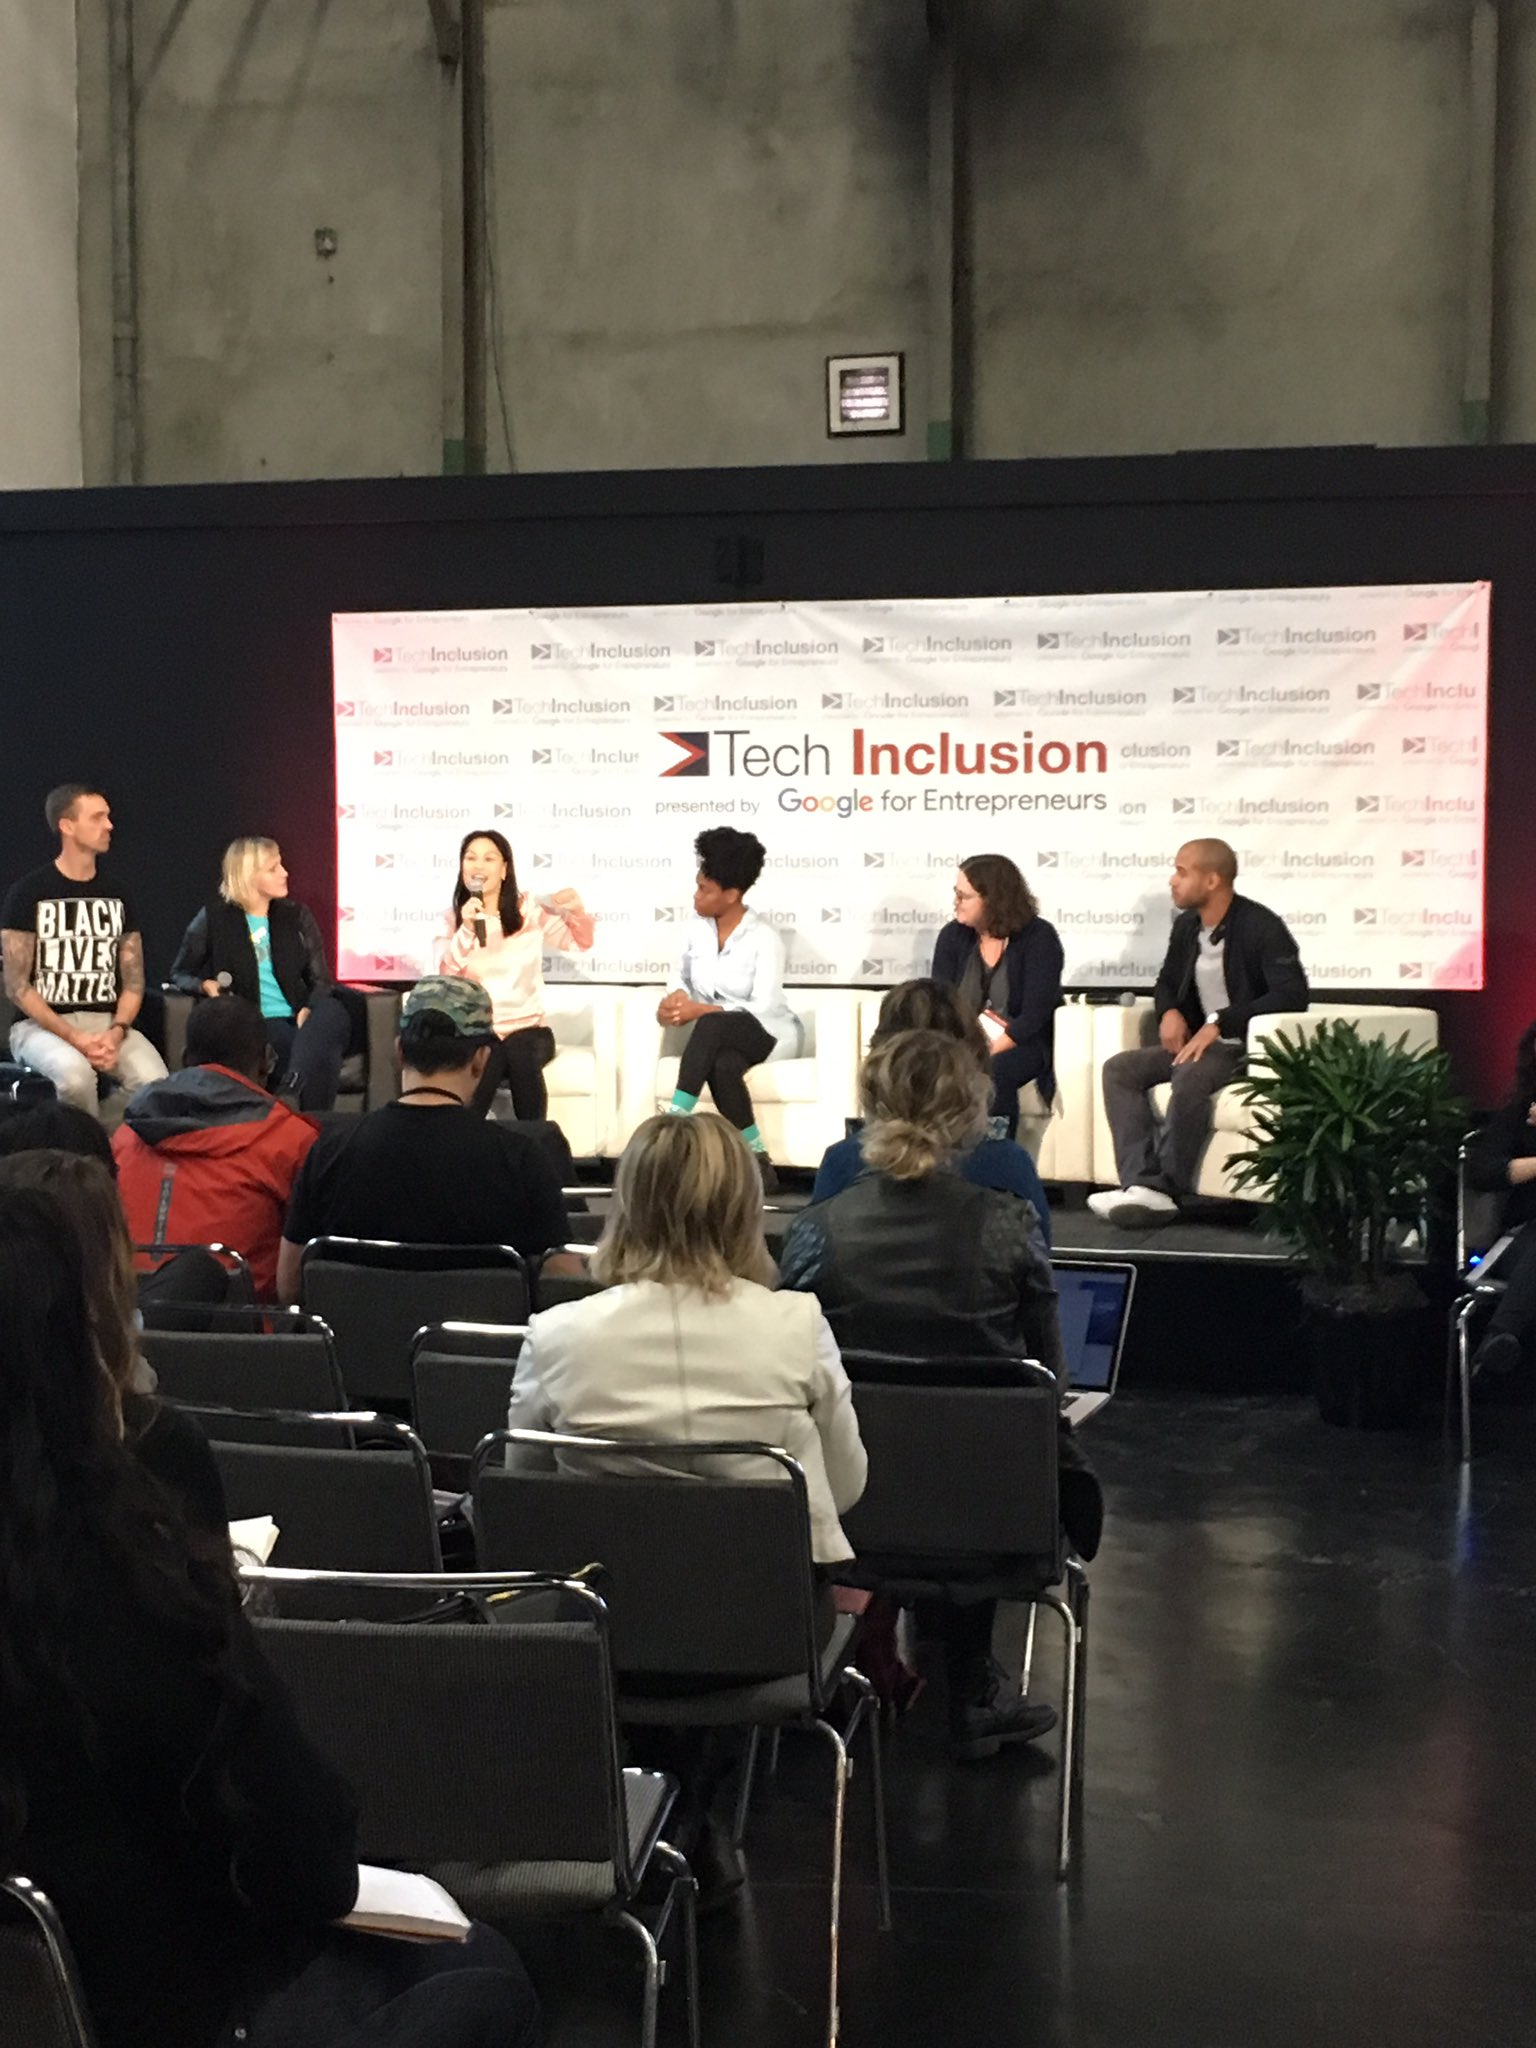 Taking about the implicit biases that exist in the workplace!  #TechInclusion16 https://t.co/ehacKyiGjP